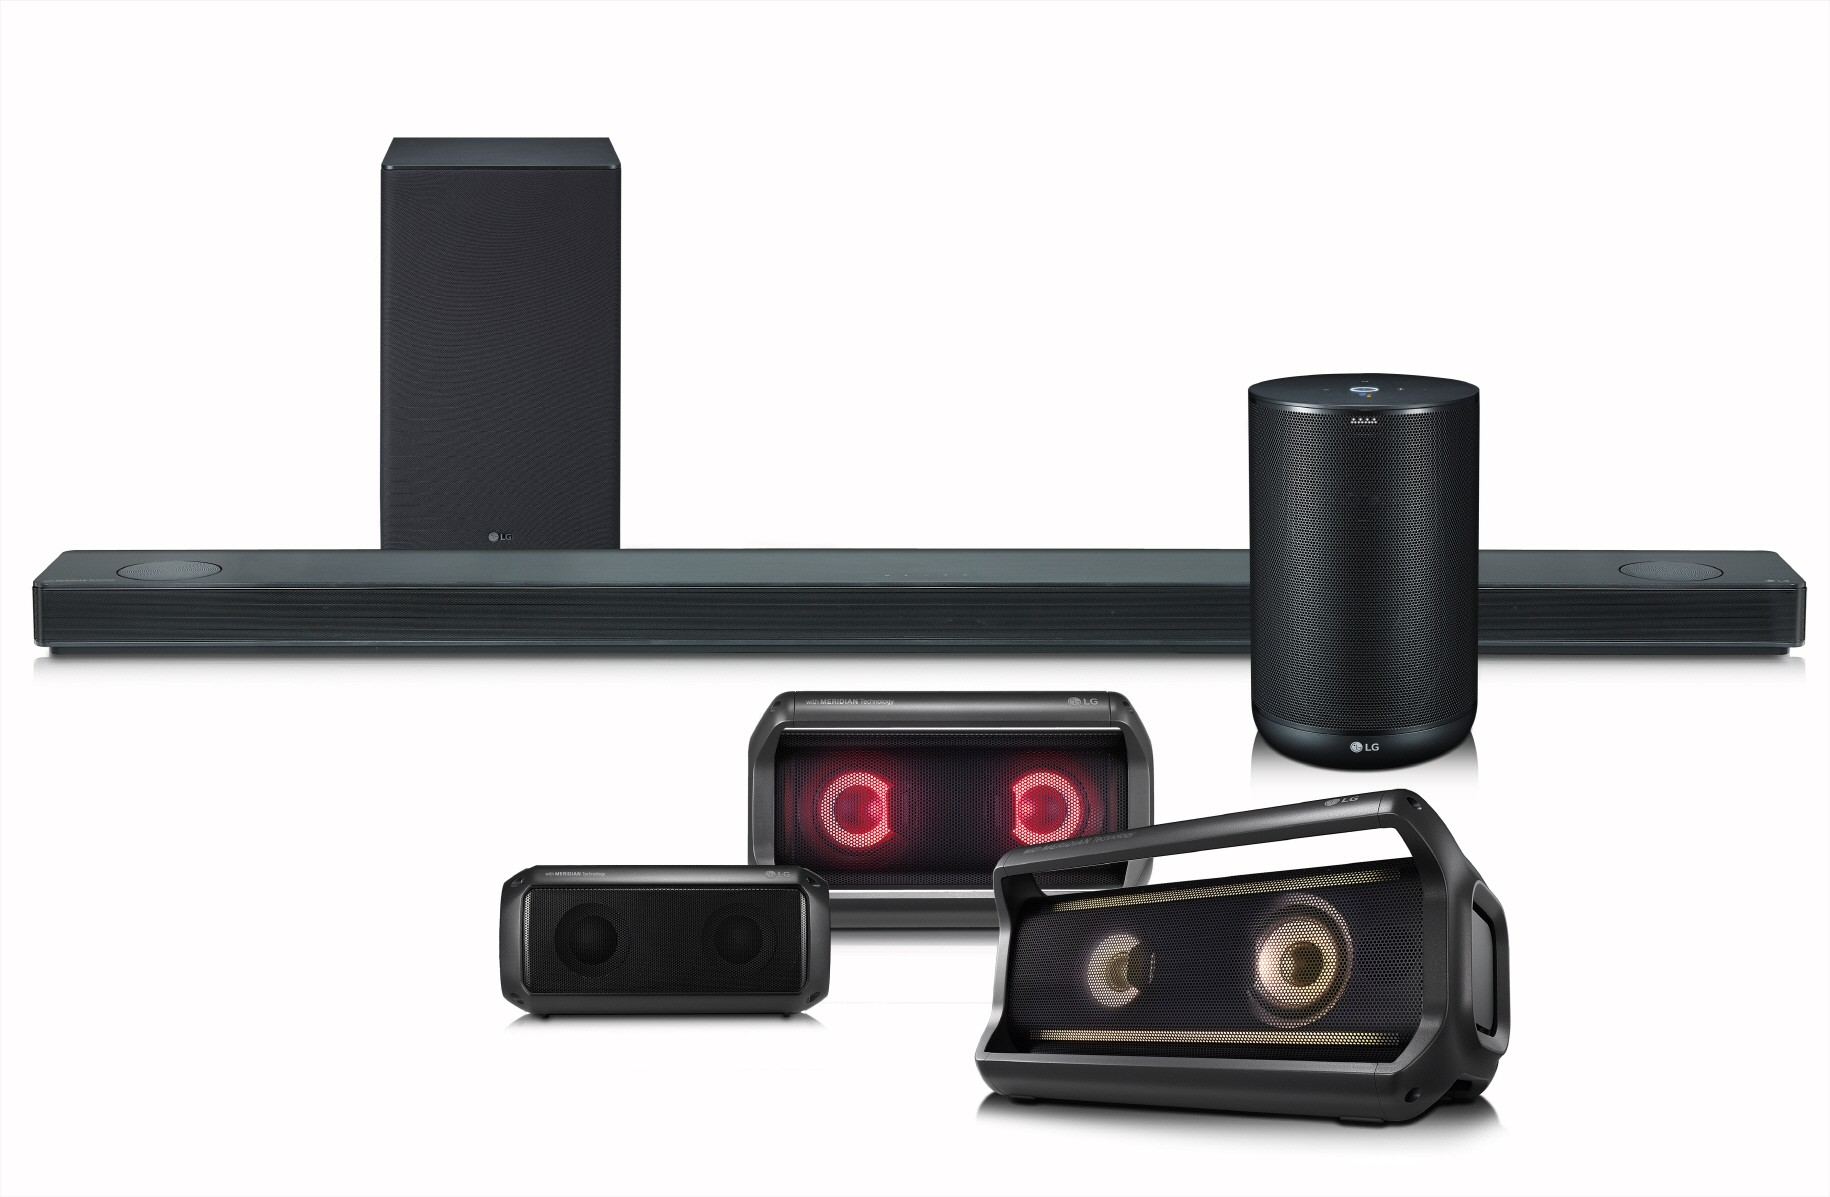 LG announces Chromecast-enabled soundbar and Assistant speaker